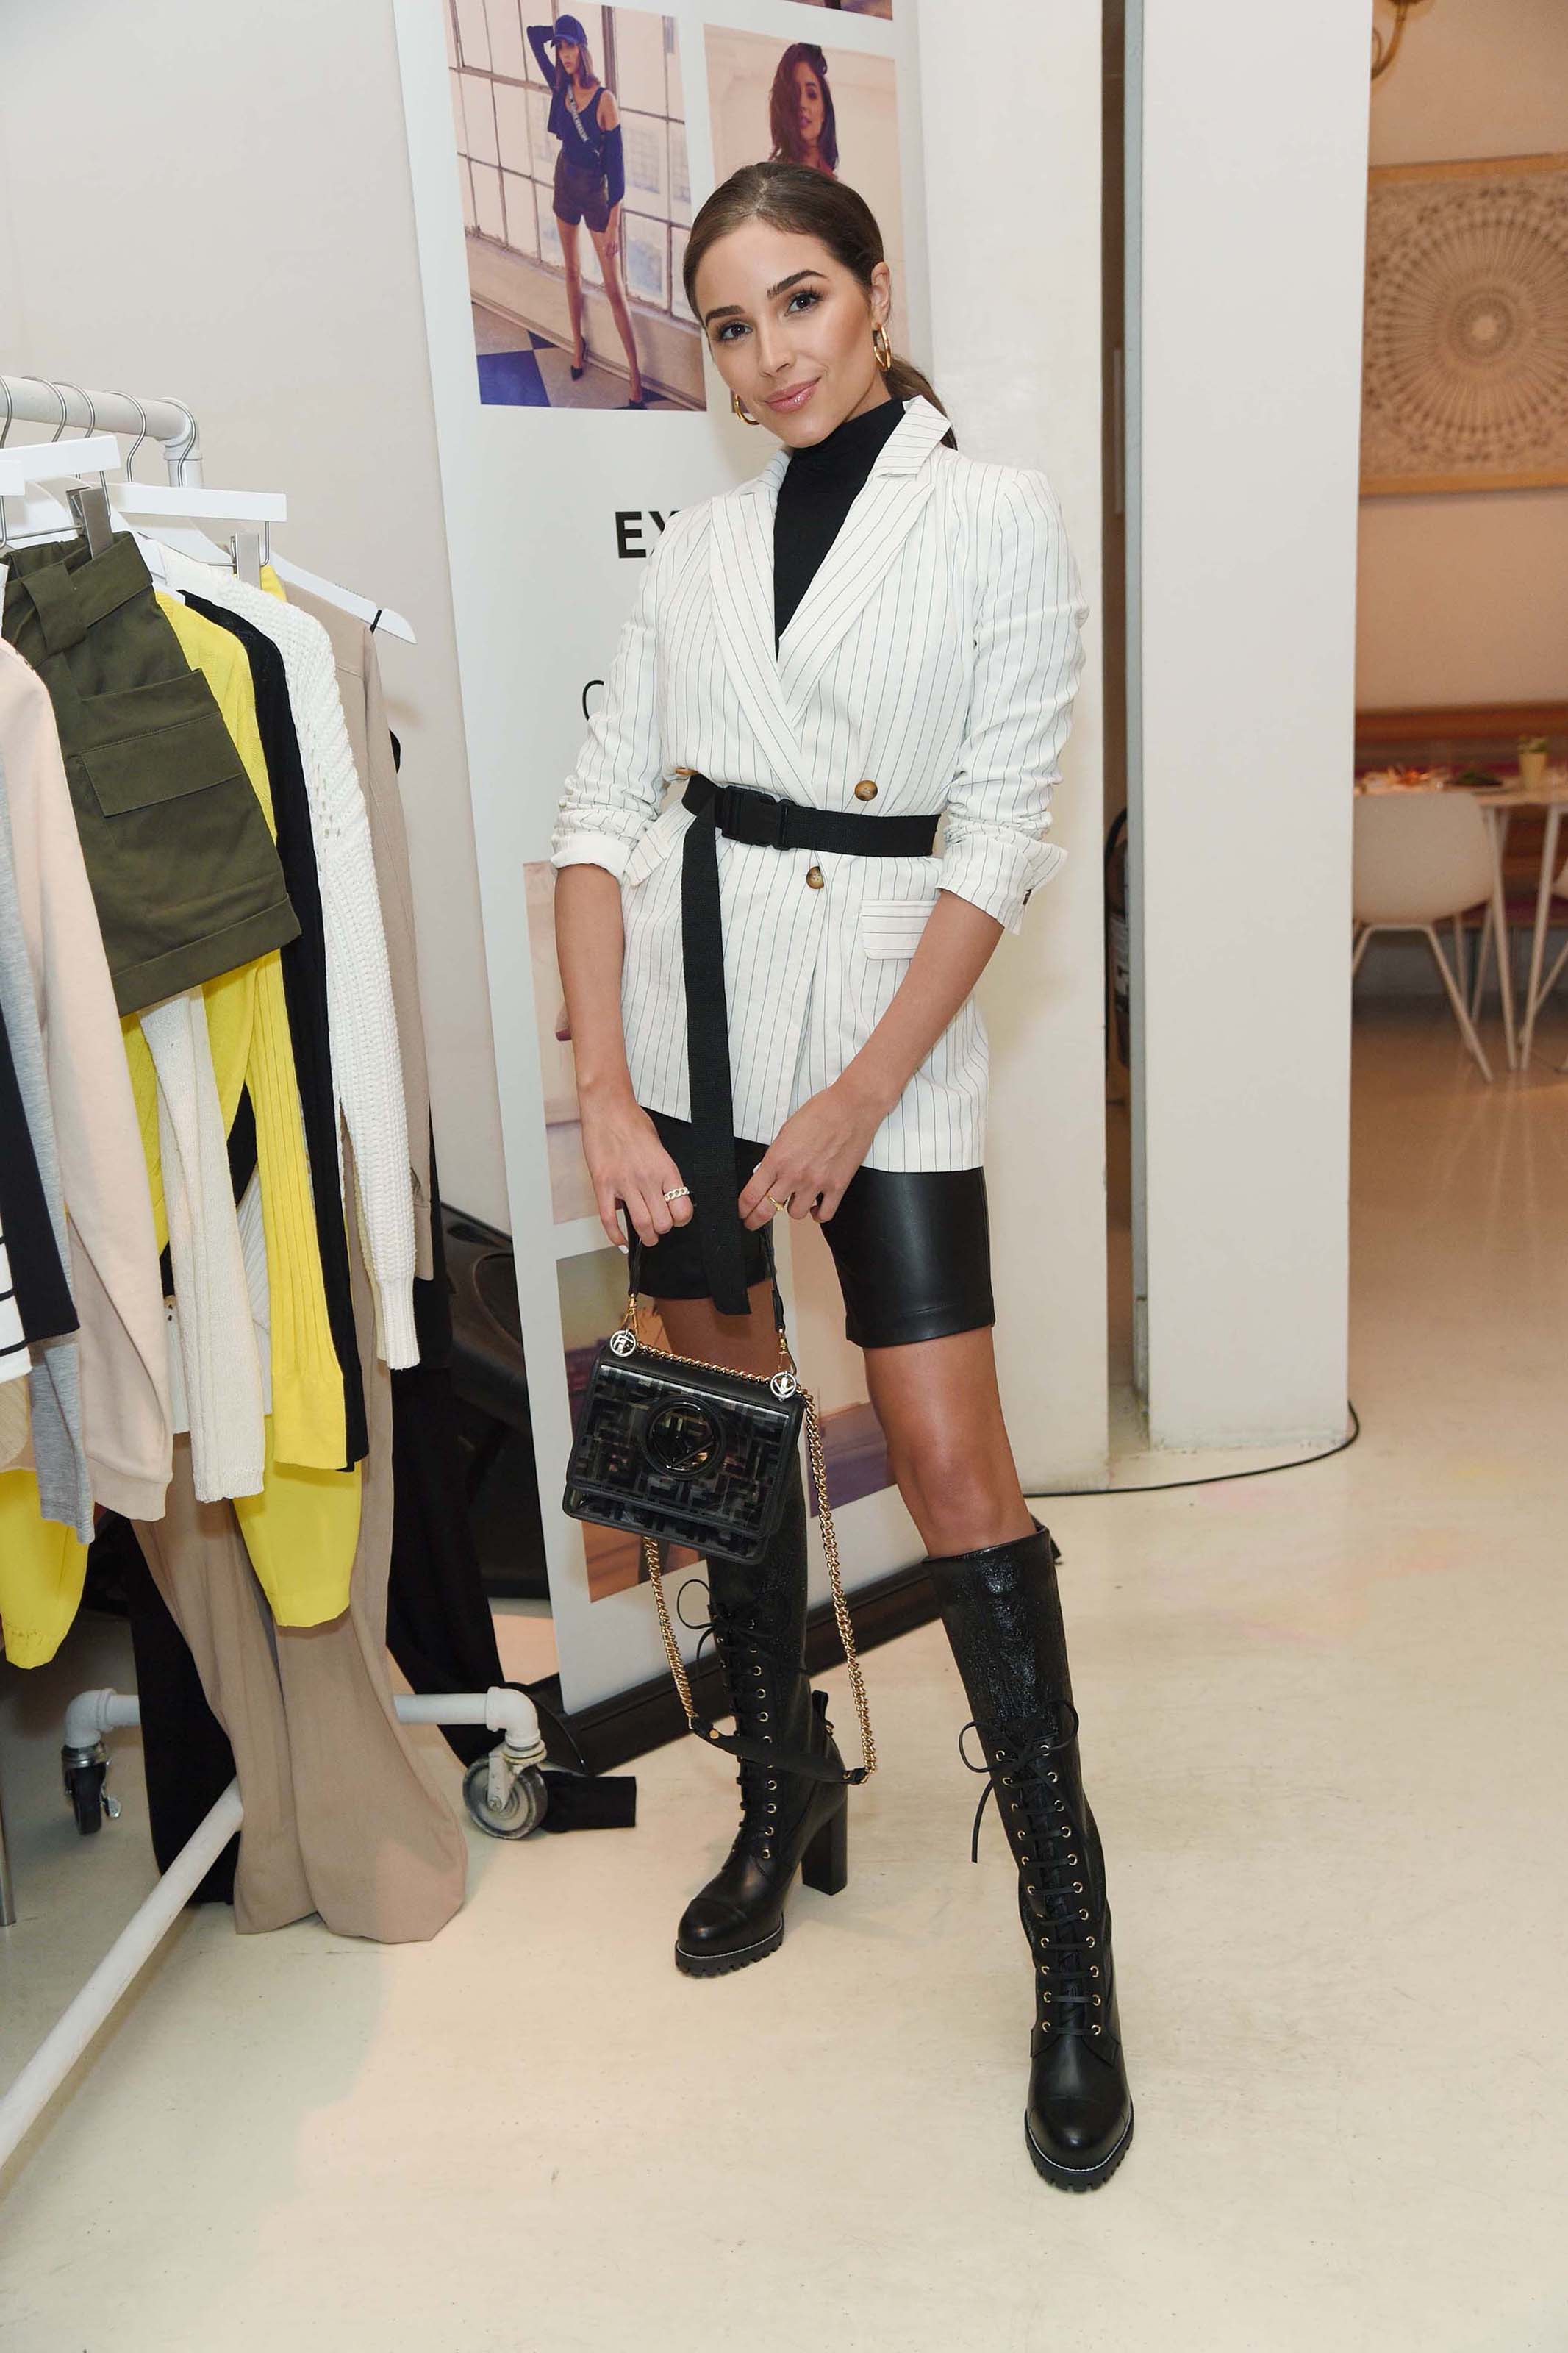 Olivia Culpo attends Express x Olivia Culpo Press Breakfast Event